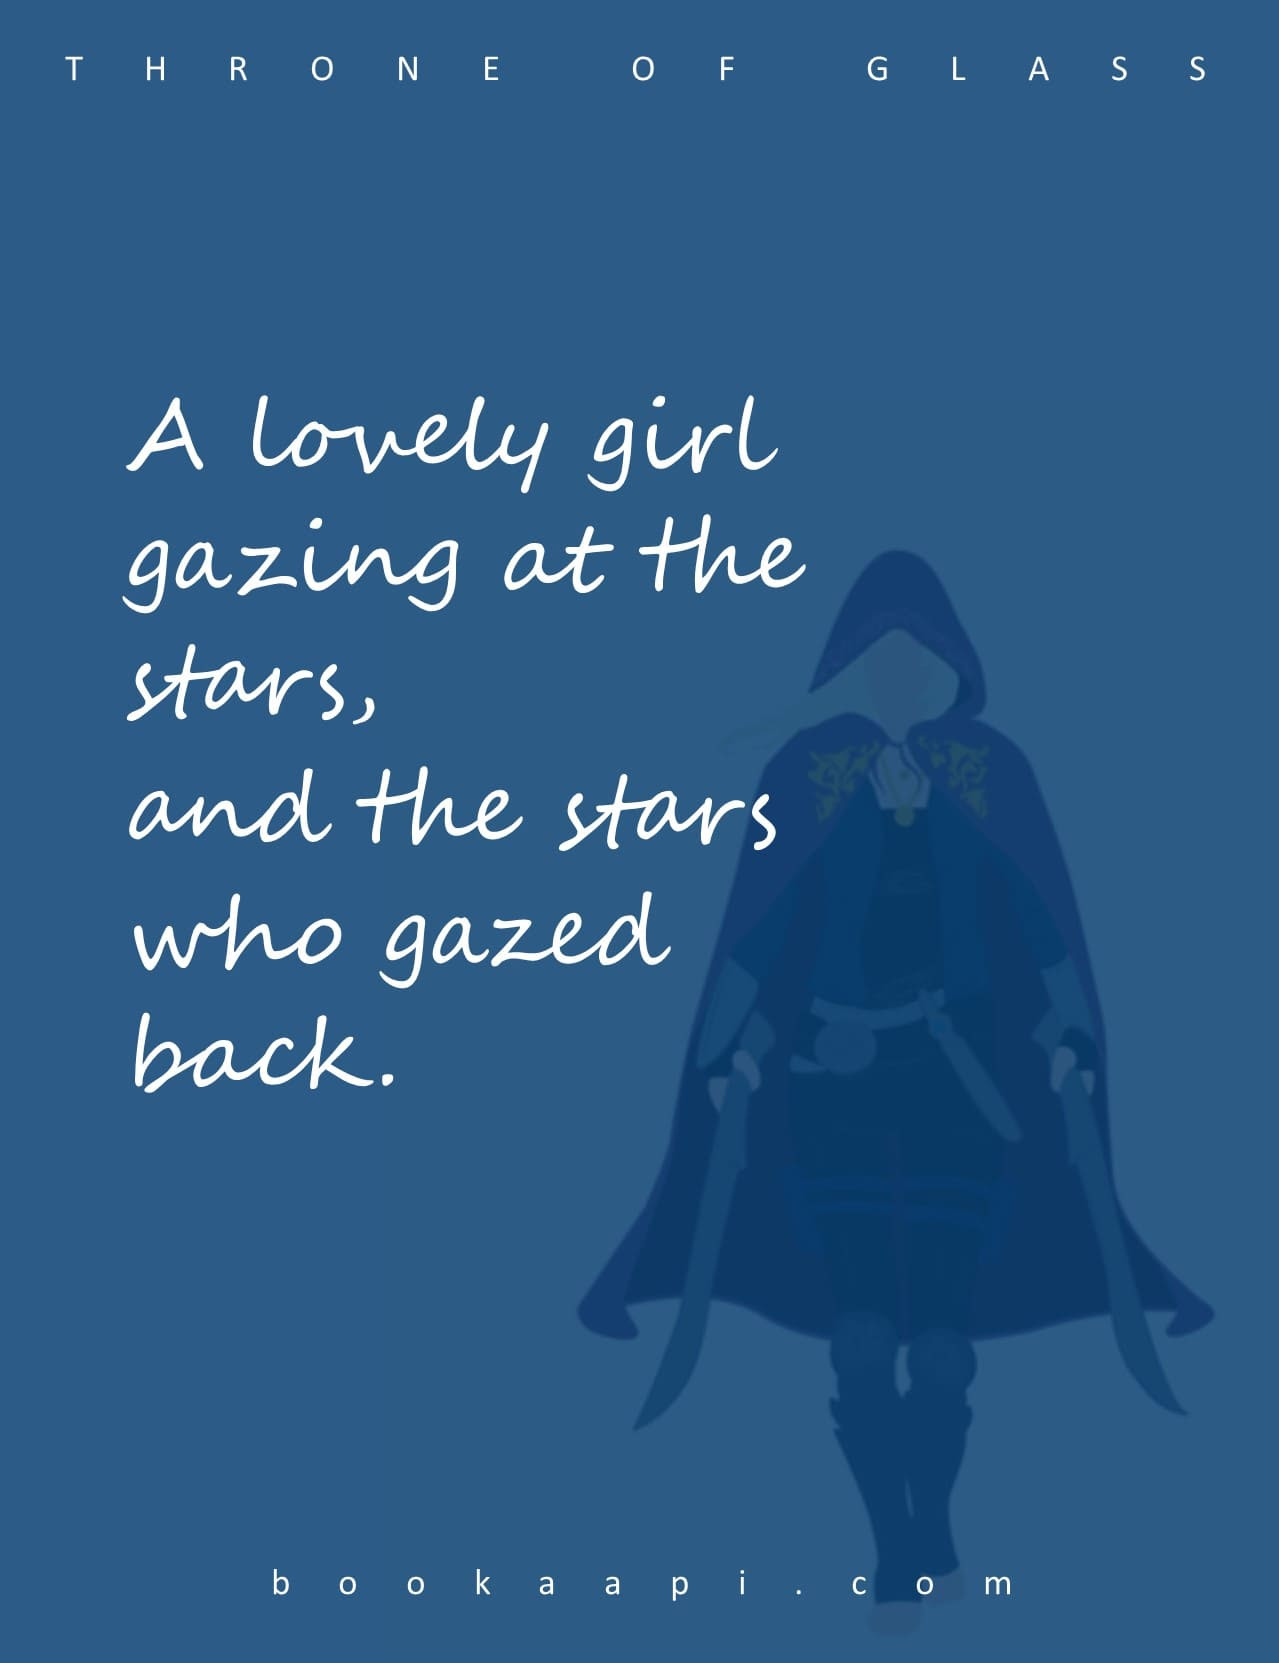 19 Kickasss Throne Of Glass Quotes By The Deadliest Assassin